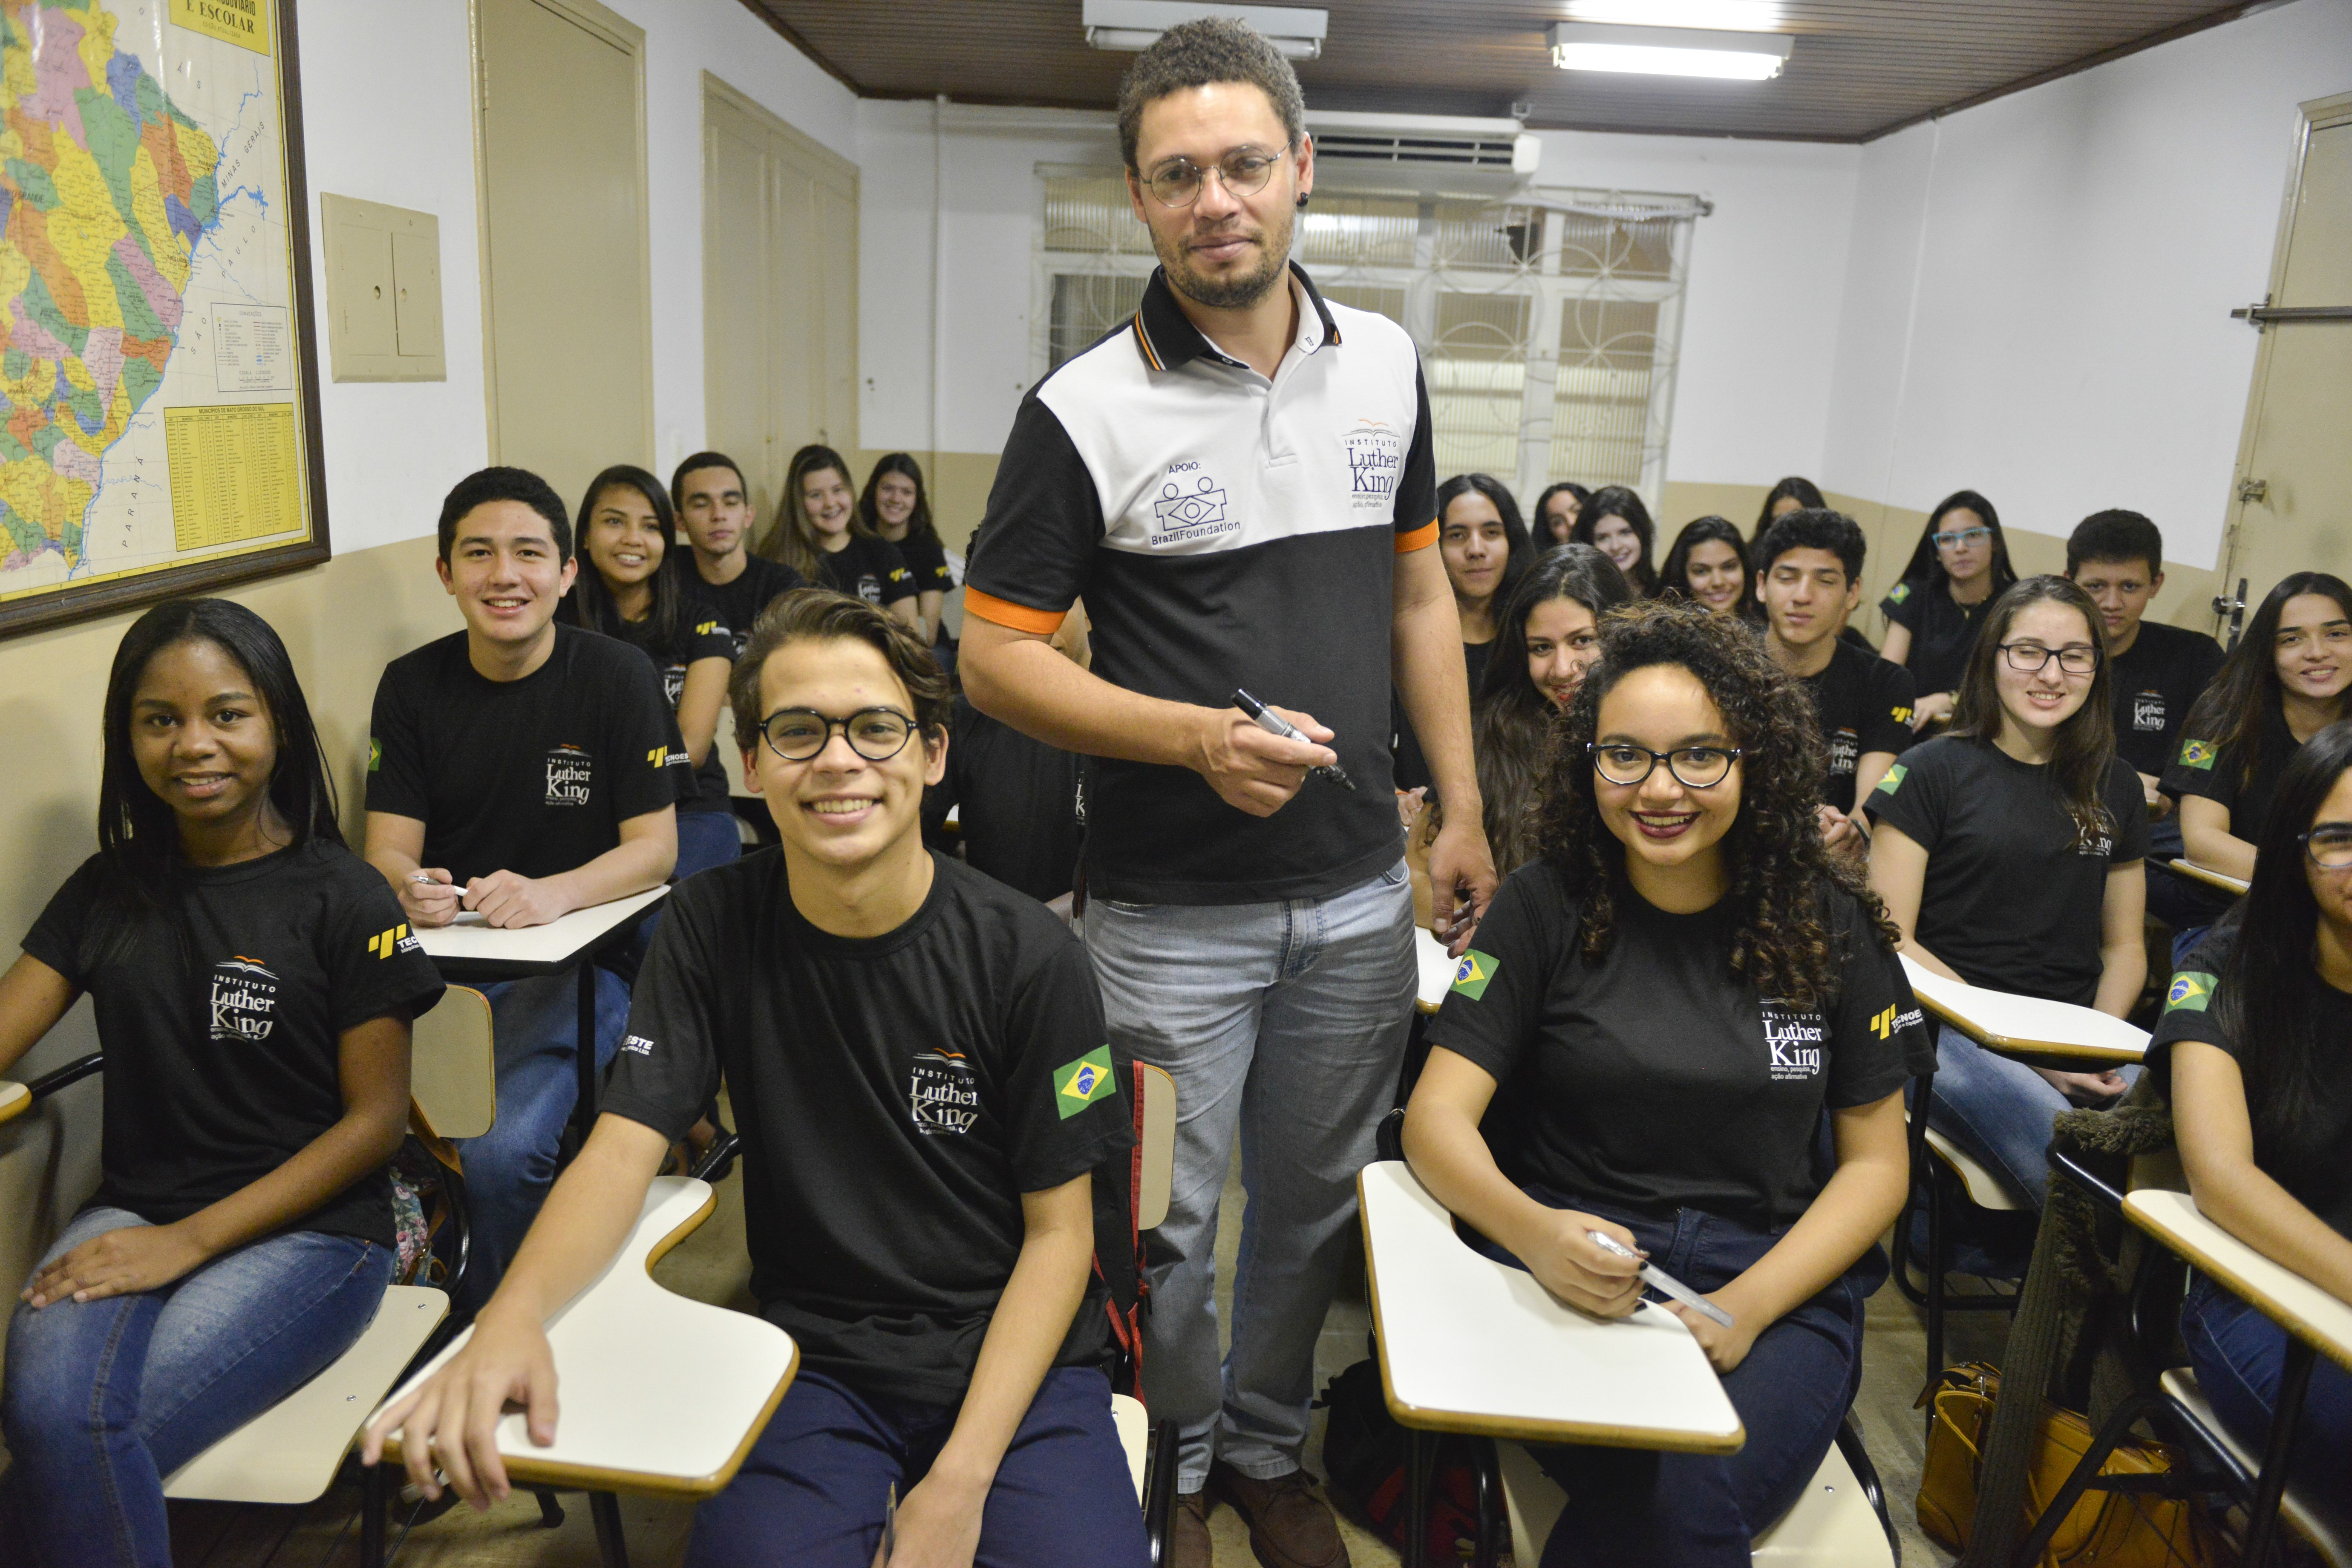 BrazilFoundation Instituto Luther King